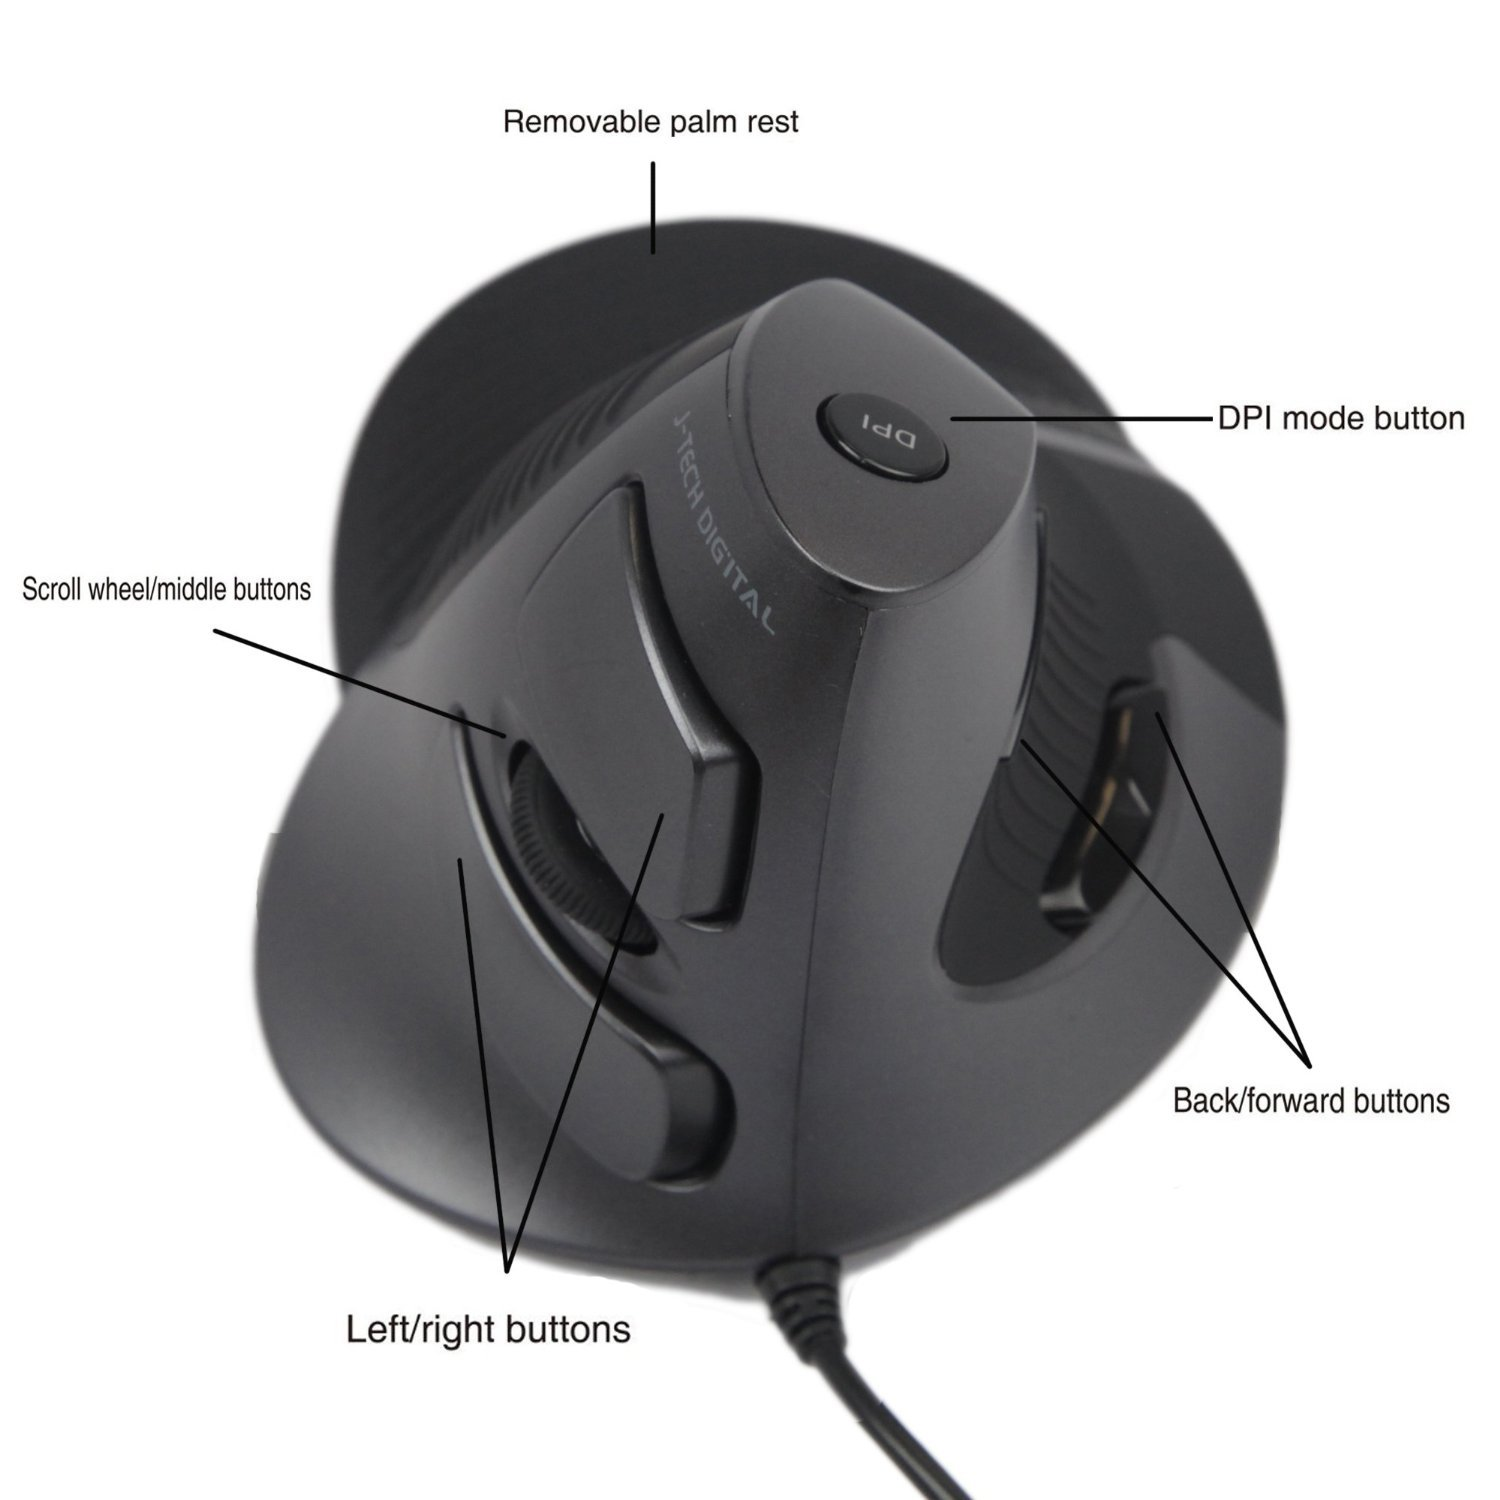 JTech Digital Scroll Endurance Wired Mouse Ergonomic Vertical USB Mouse with Adjustable Sensitivity